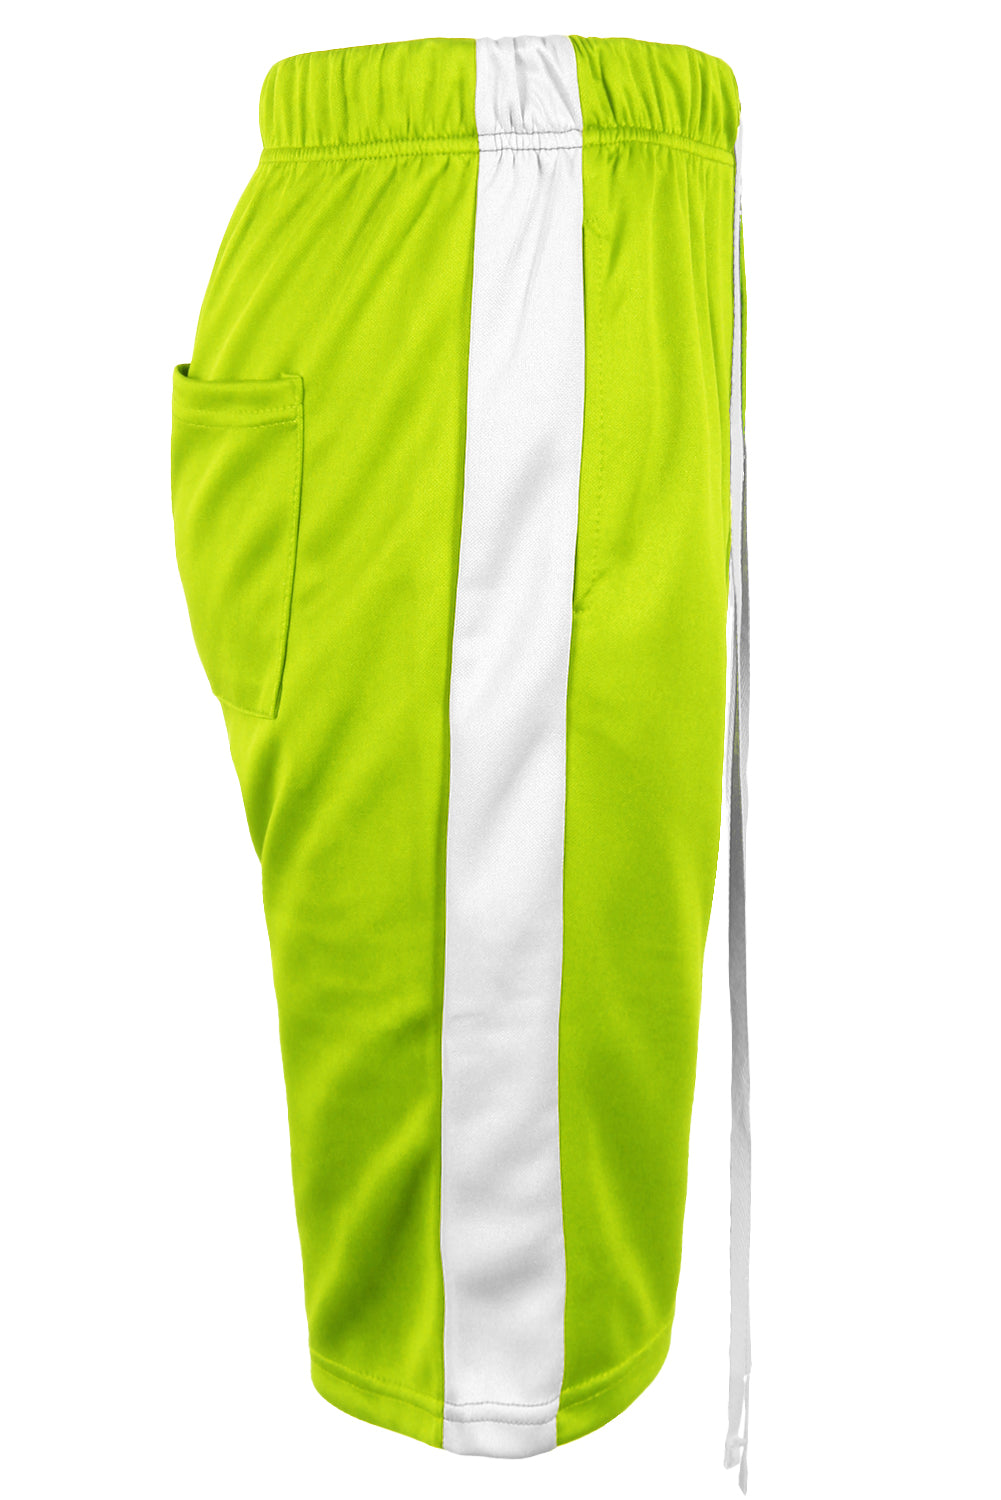 Track Shorts Side Stripes (Lime)